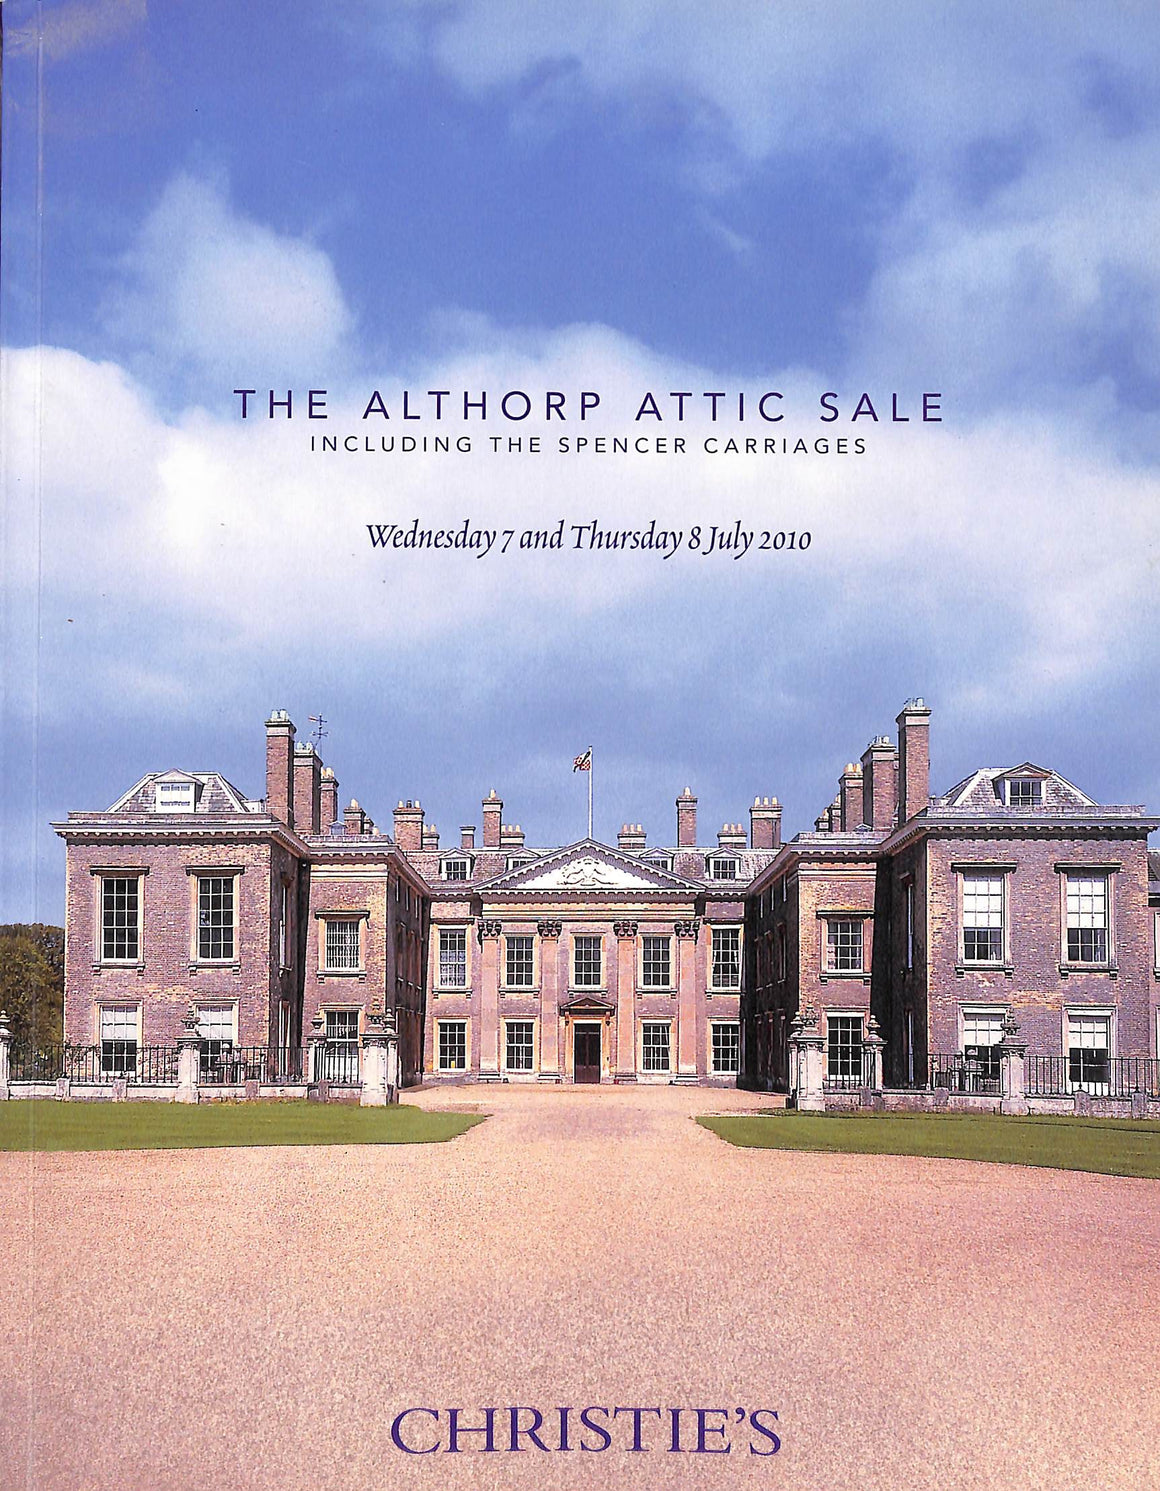 Christie's: The Althorp Attic Sale Including the Spencer Carriages - 7-8 July 2010